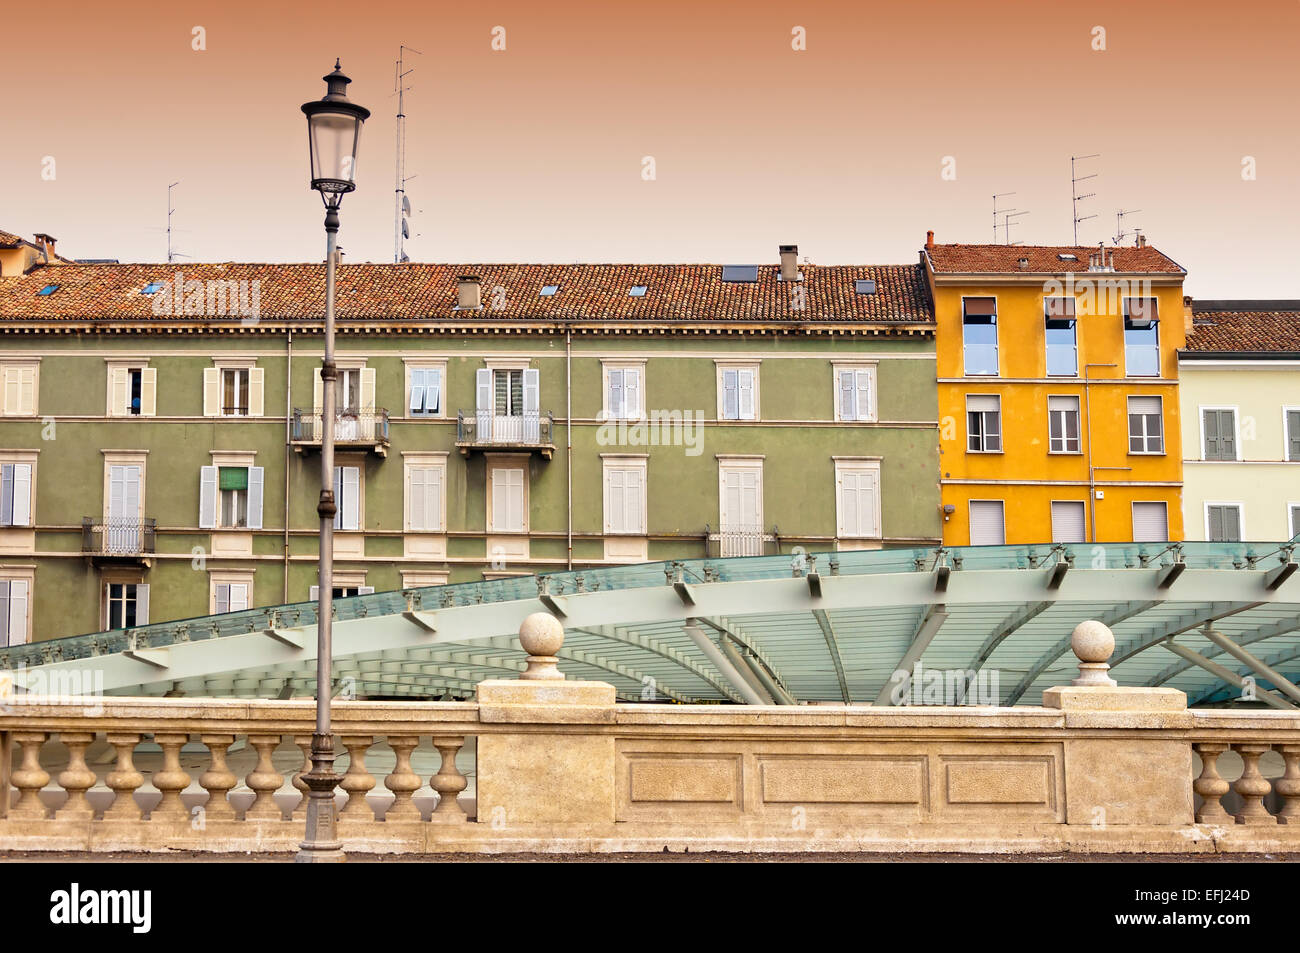 Parma, Italy - Emilia-Romagna region. contrast between colorful Mediterranean architecture and modern glass roof - Stock Image